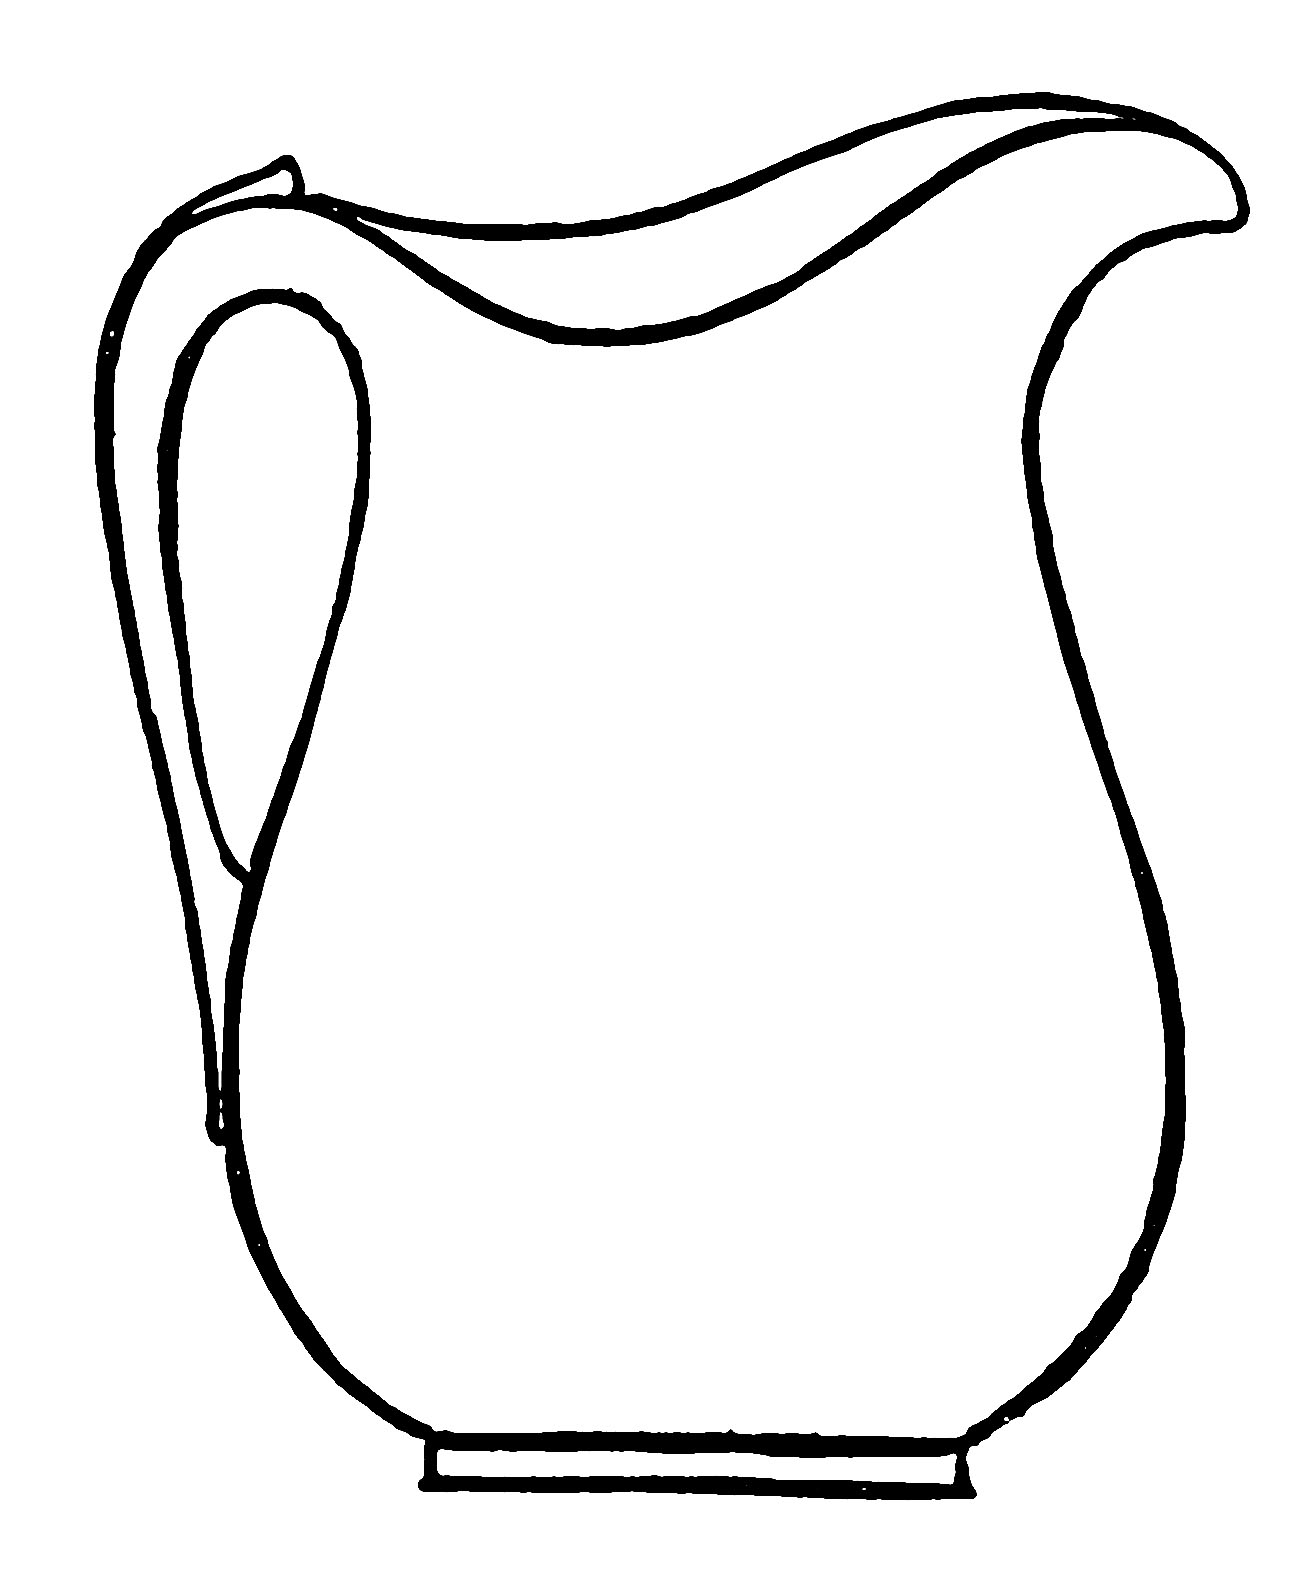 Pitcher clipart mound Clipart Pitcher drawings clipart Download